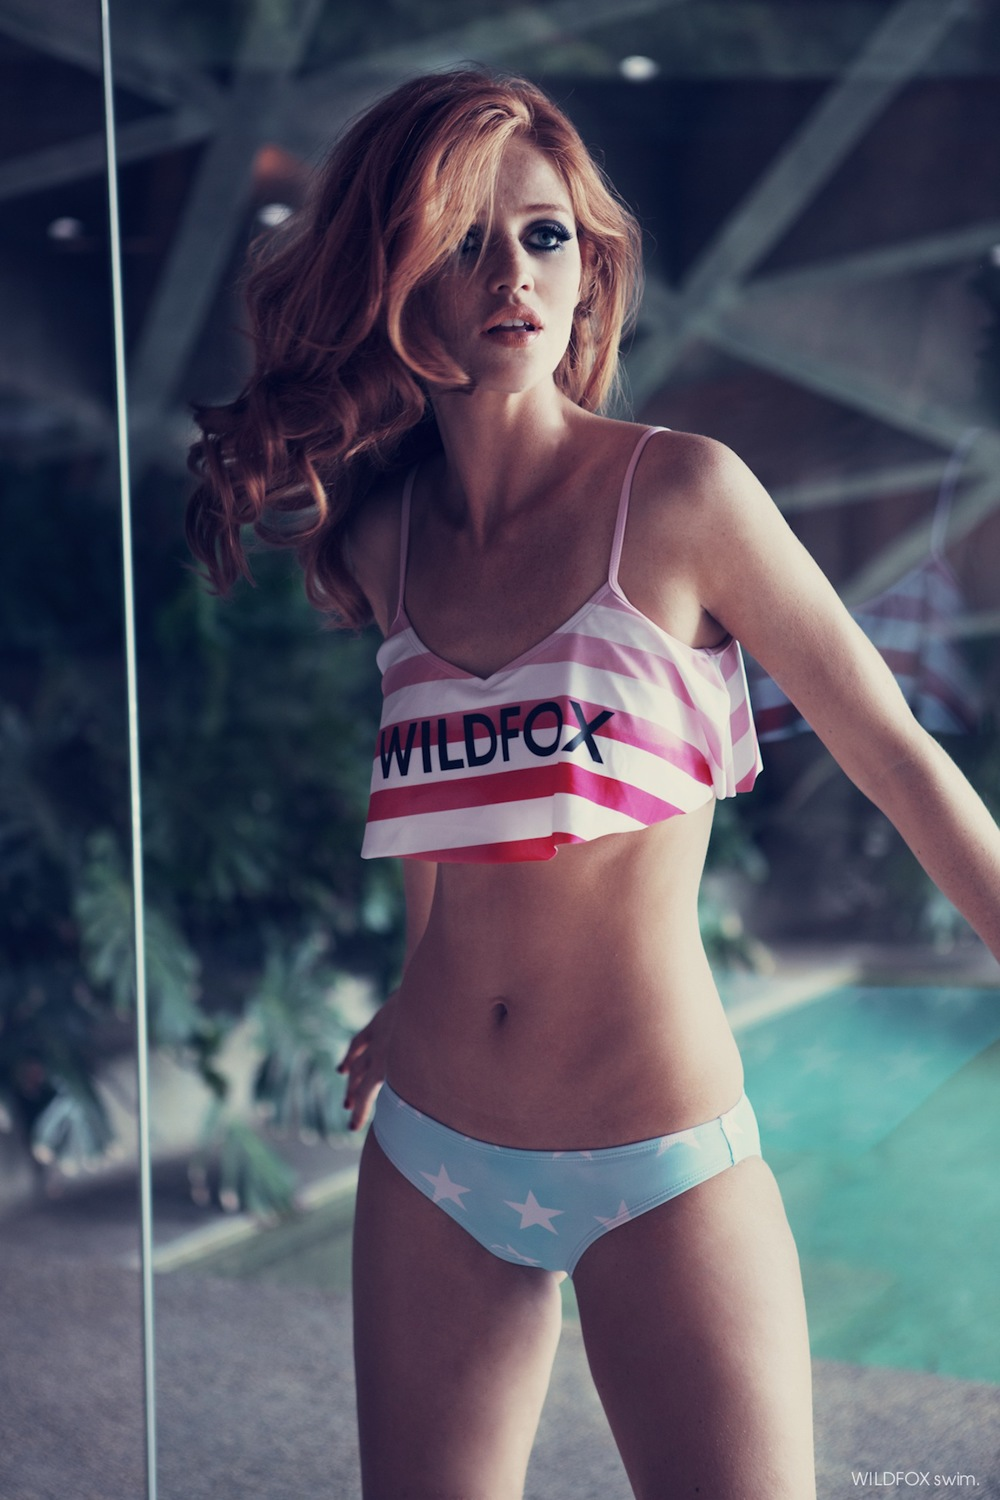 Wildfox Swim